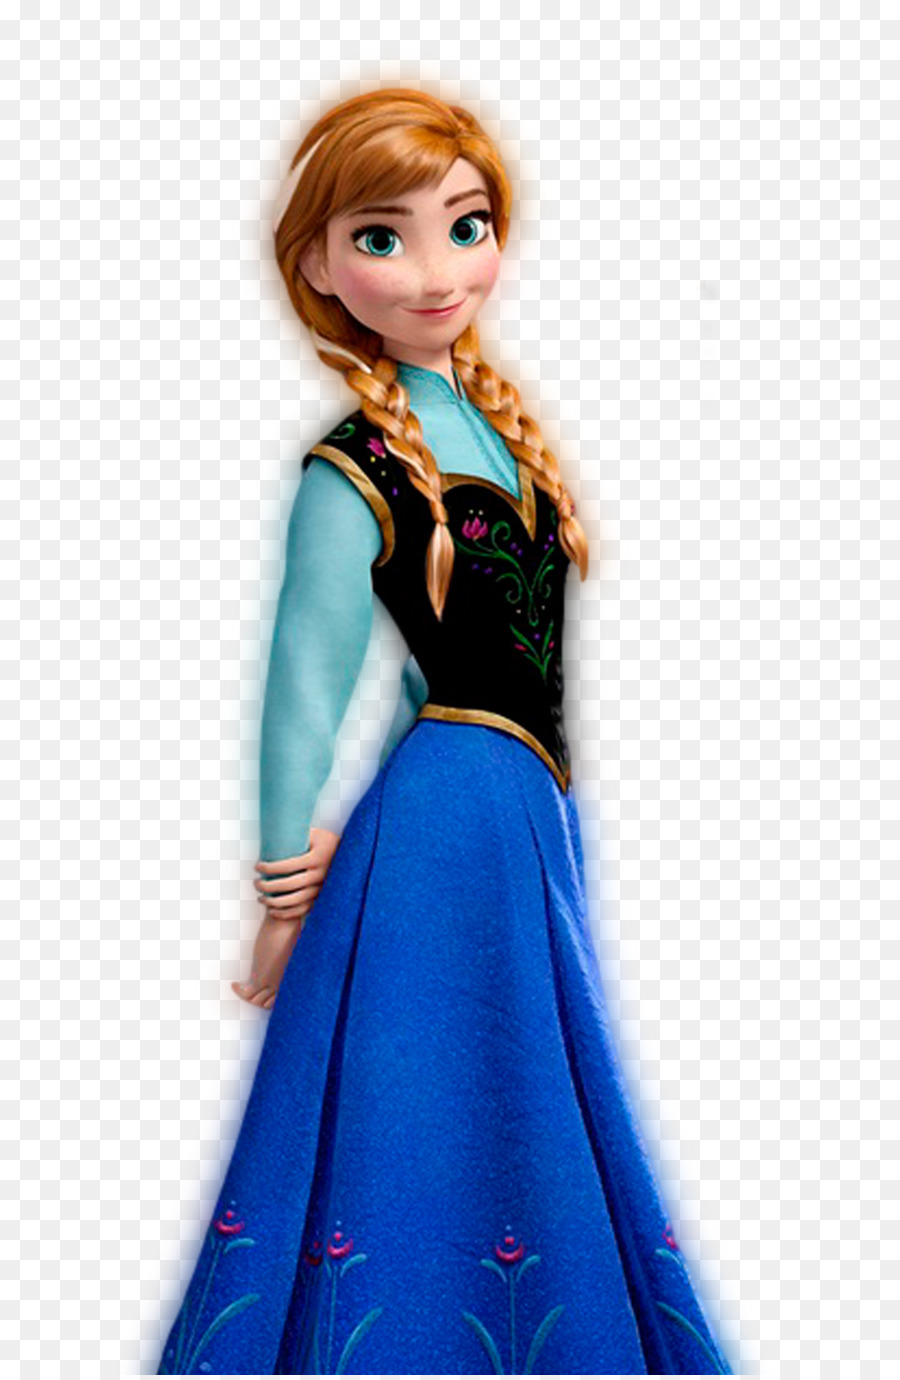 Elsa kristoff anna frozen olaf anna frozen png download - Frozen anna and olaf ...